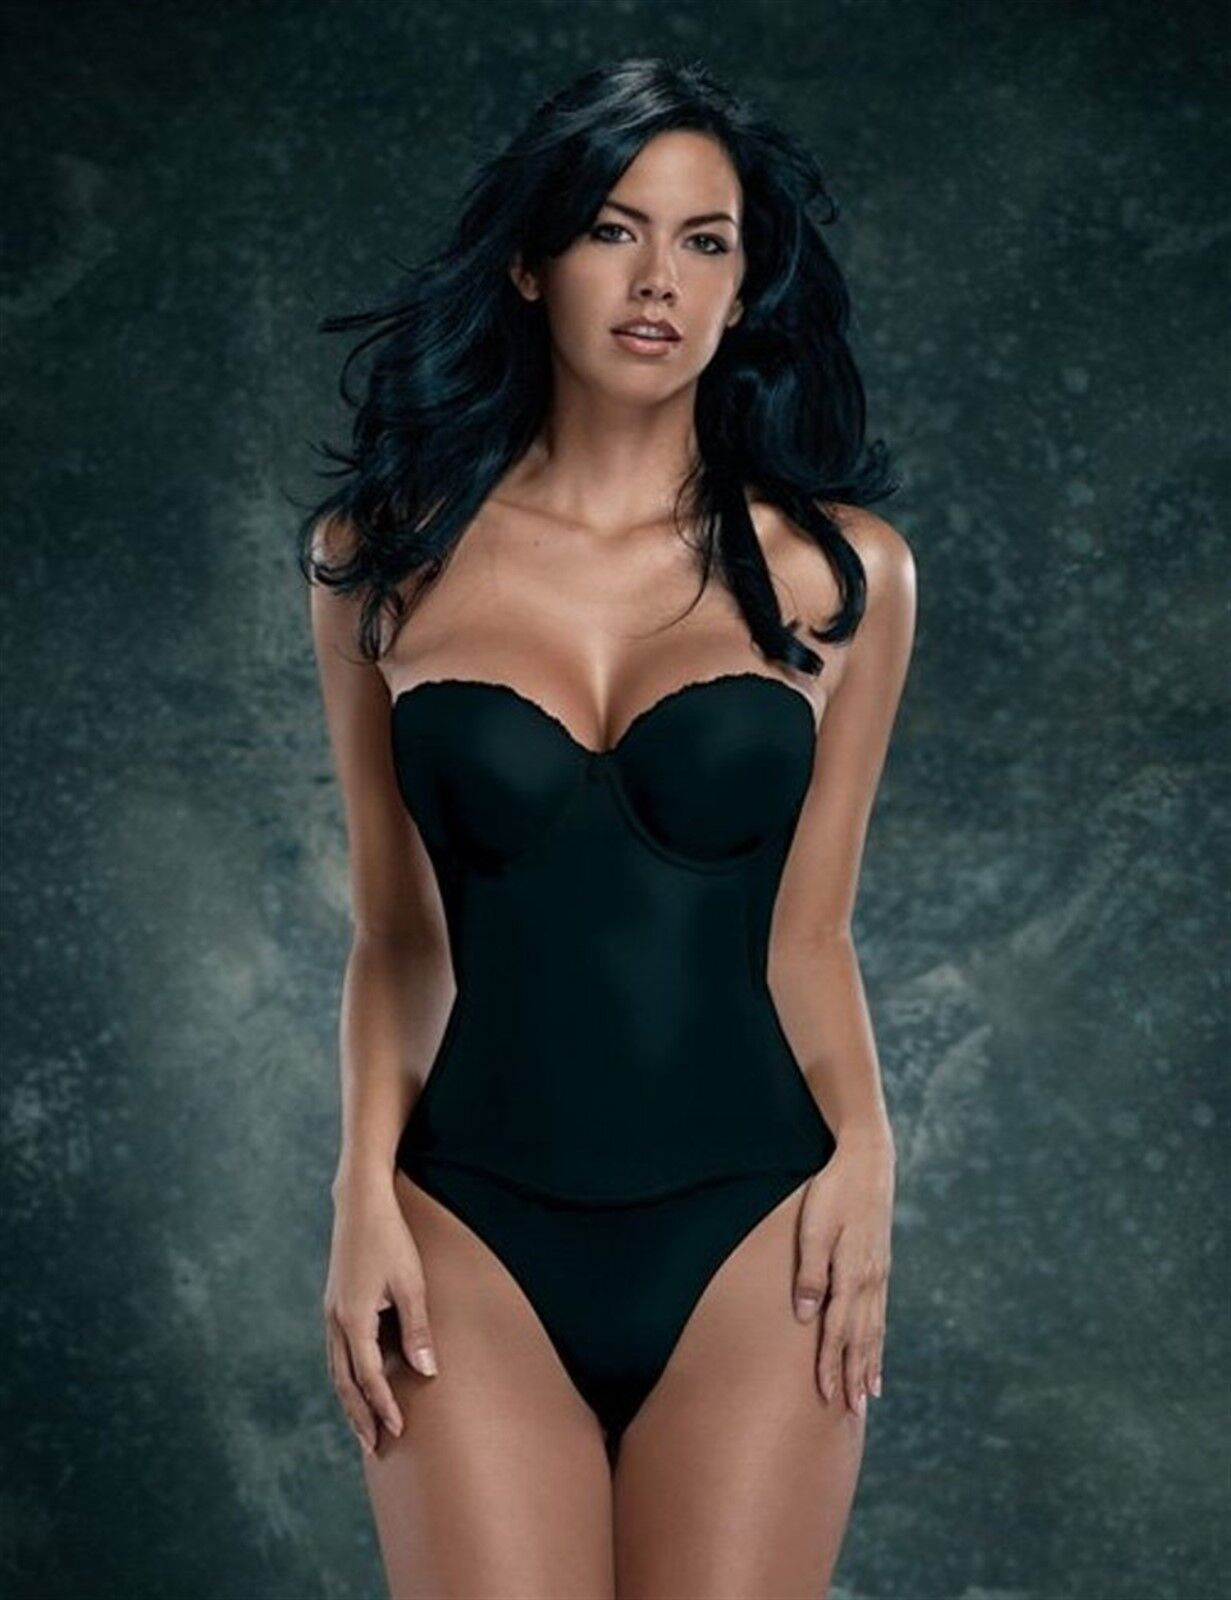 c788e3565965b Flattering Me Longline Strapless / Convertible Bra - Bridal Bustier - Black  colored - new with tags! Style 728W.